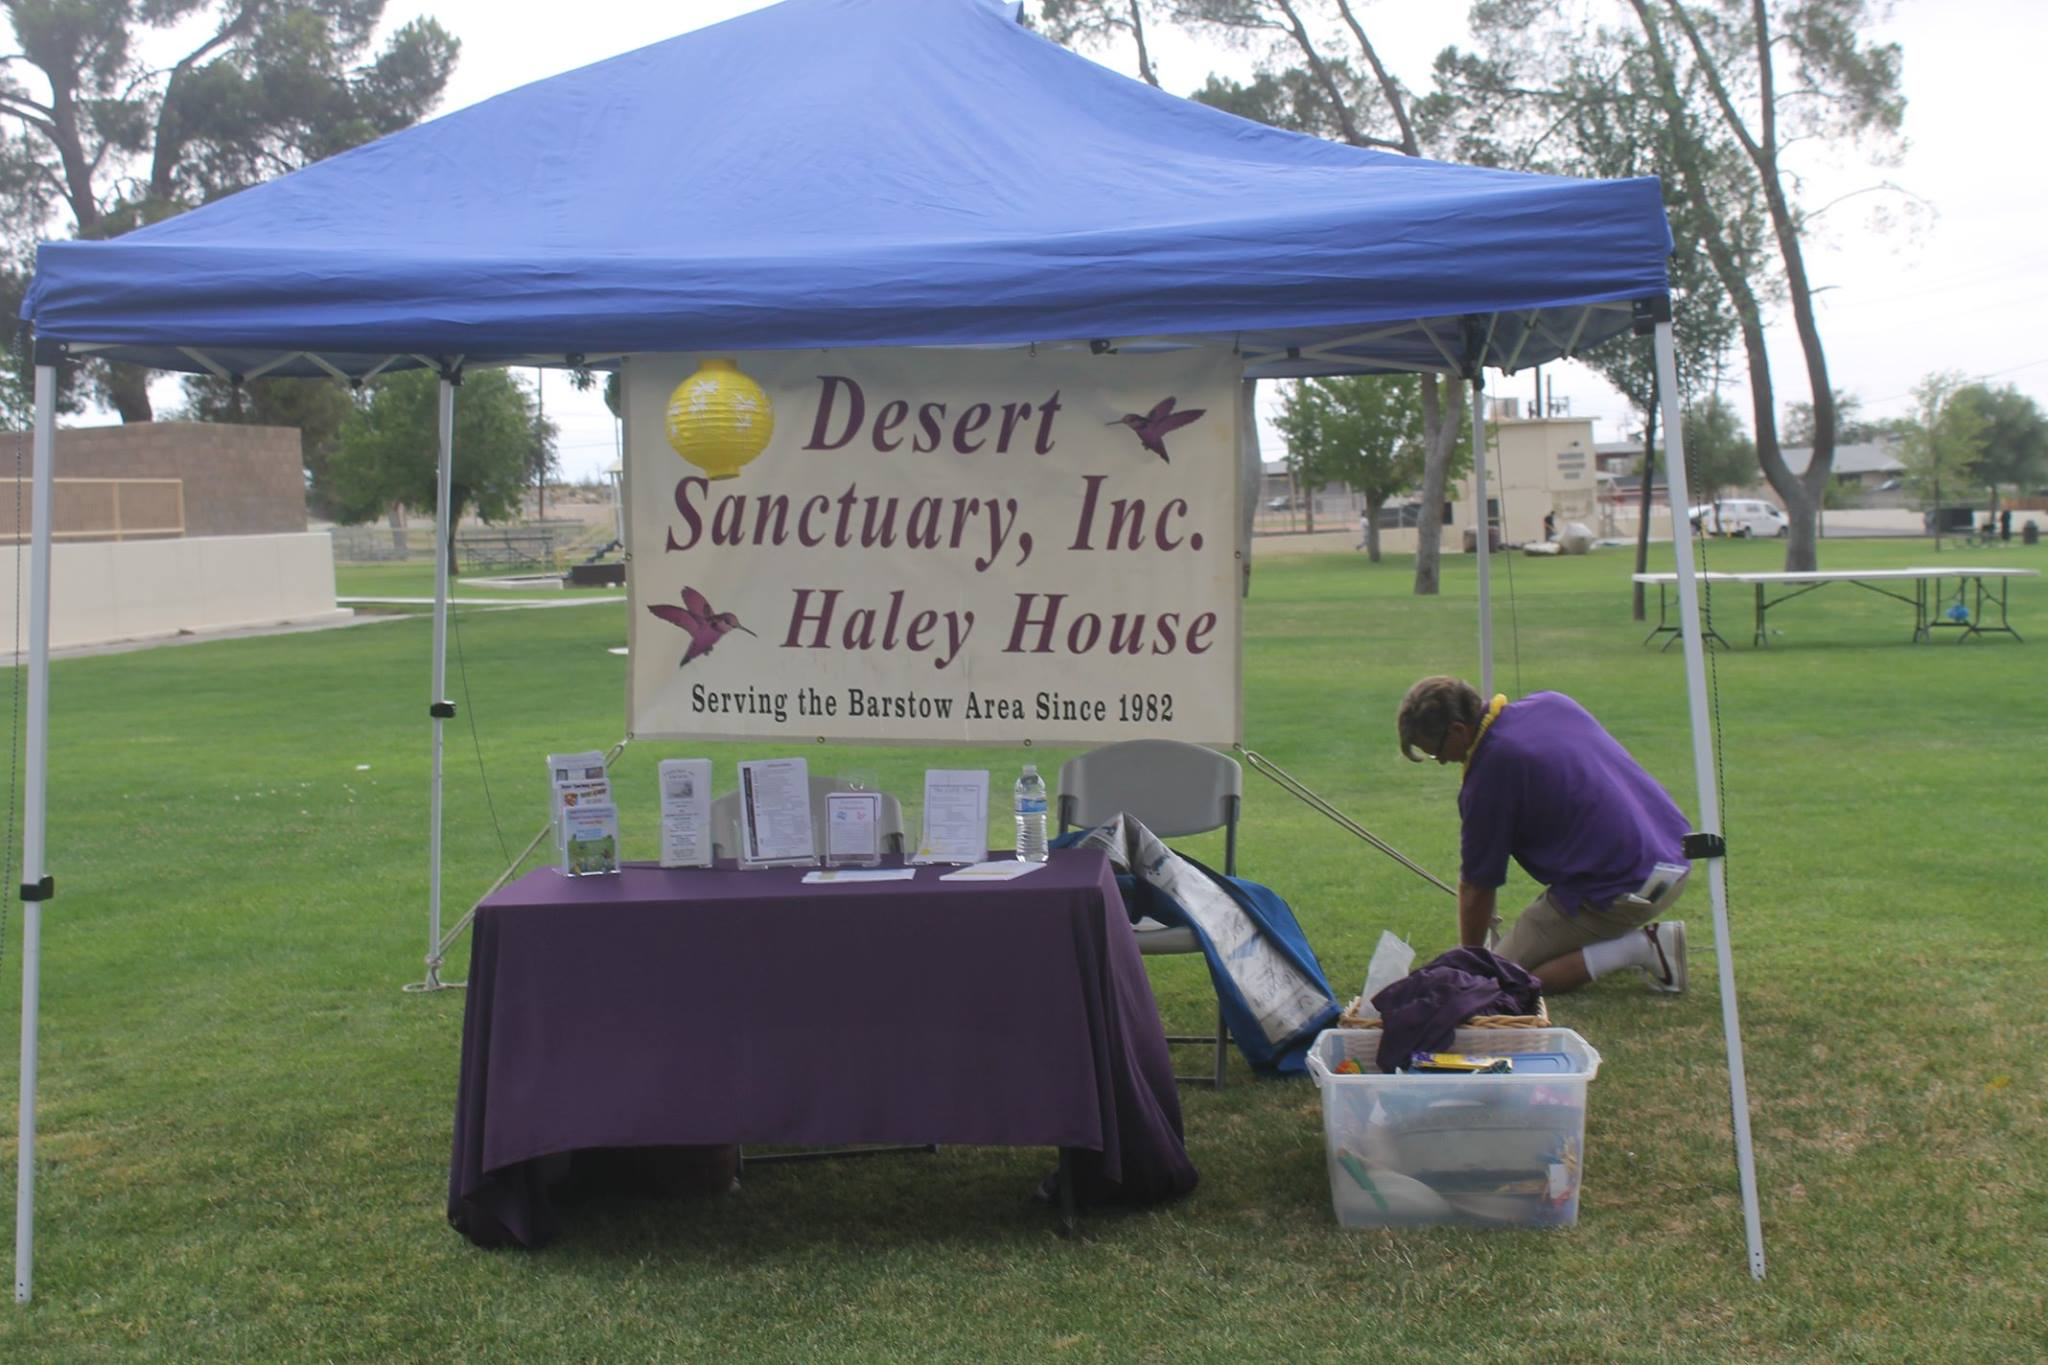 Haley House - Desert Sanctuary Inc